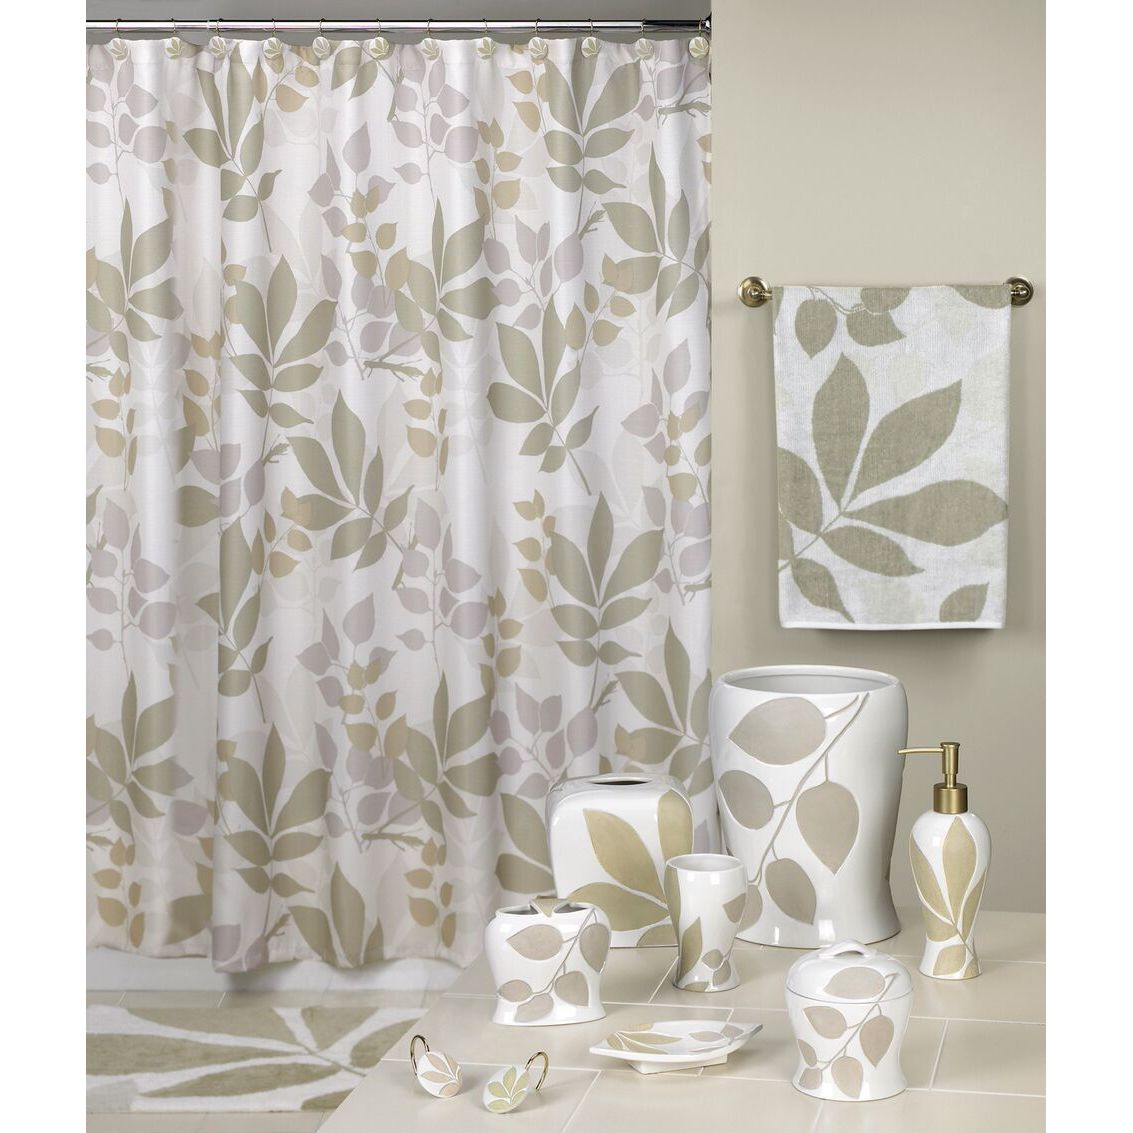 Shop Shadow Leaves Shower Curtain and Bathroom Accessories Separates ...